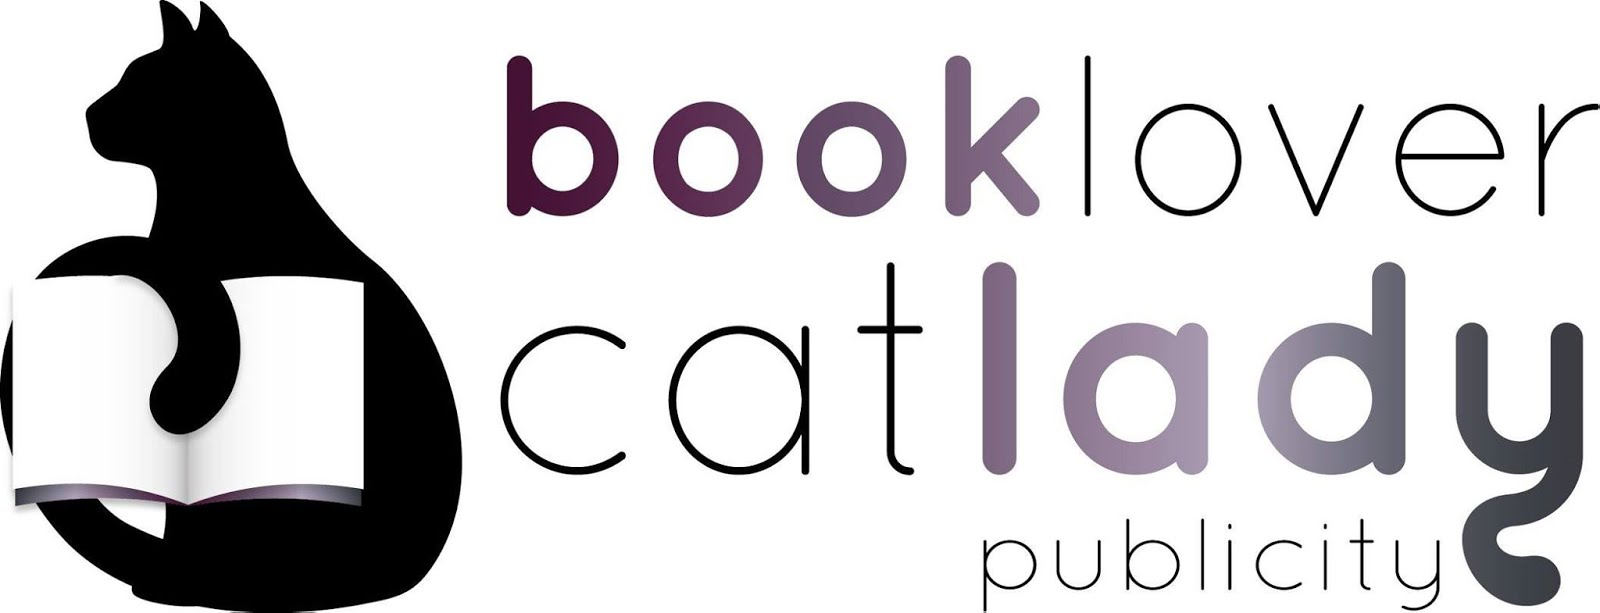 Booklover Catlady Publicity